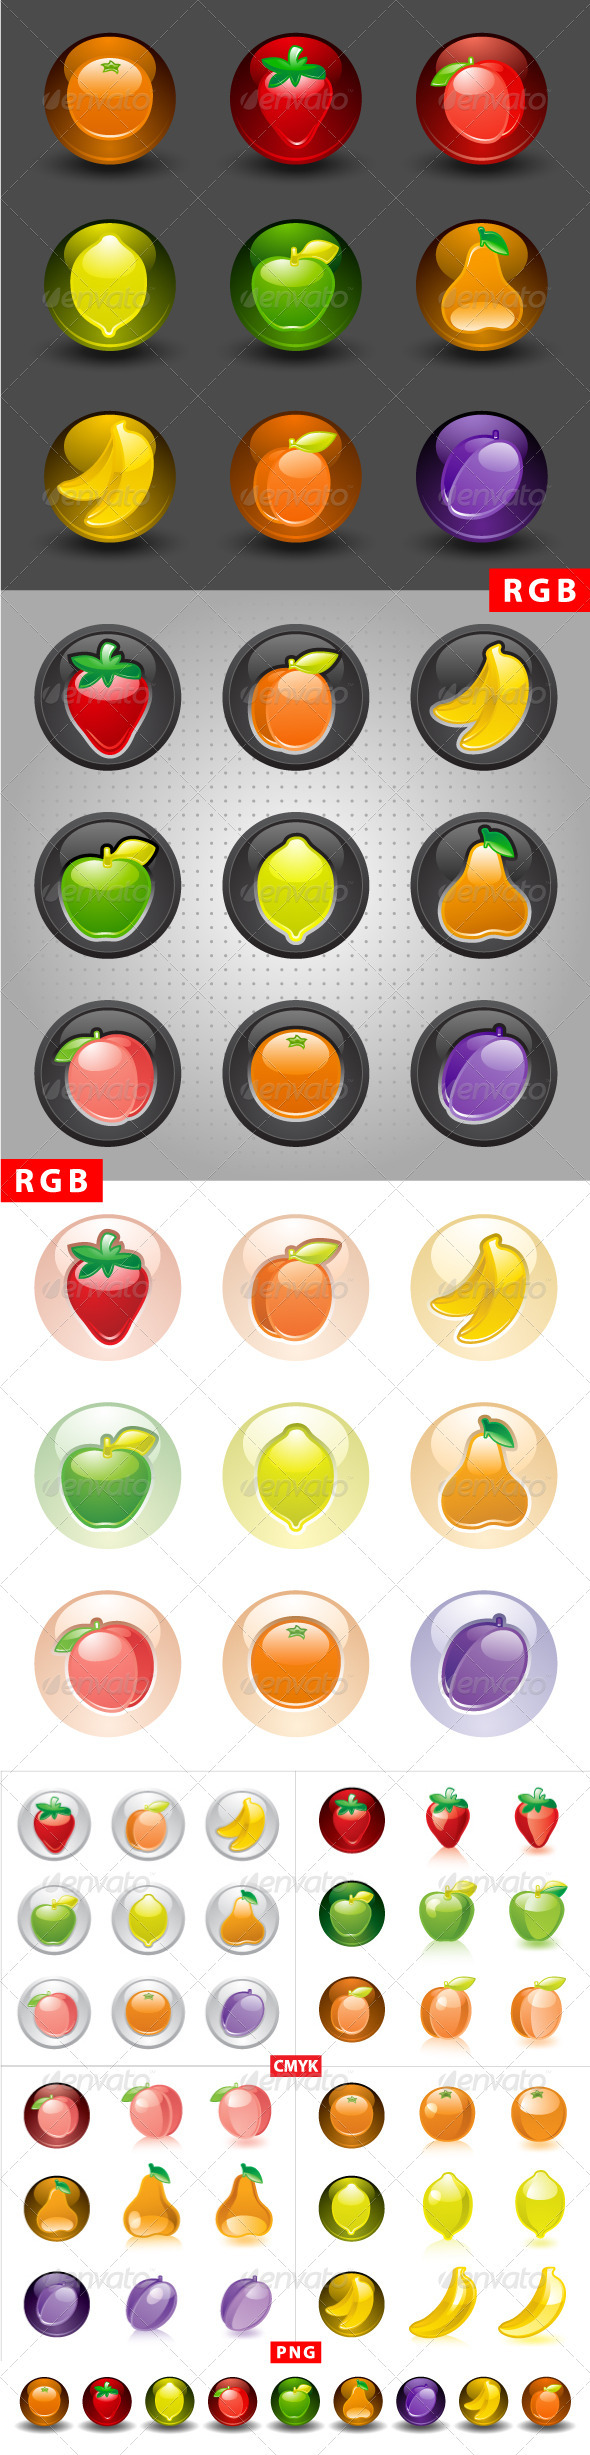 Fruit buttons, web 2.0 icons